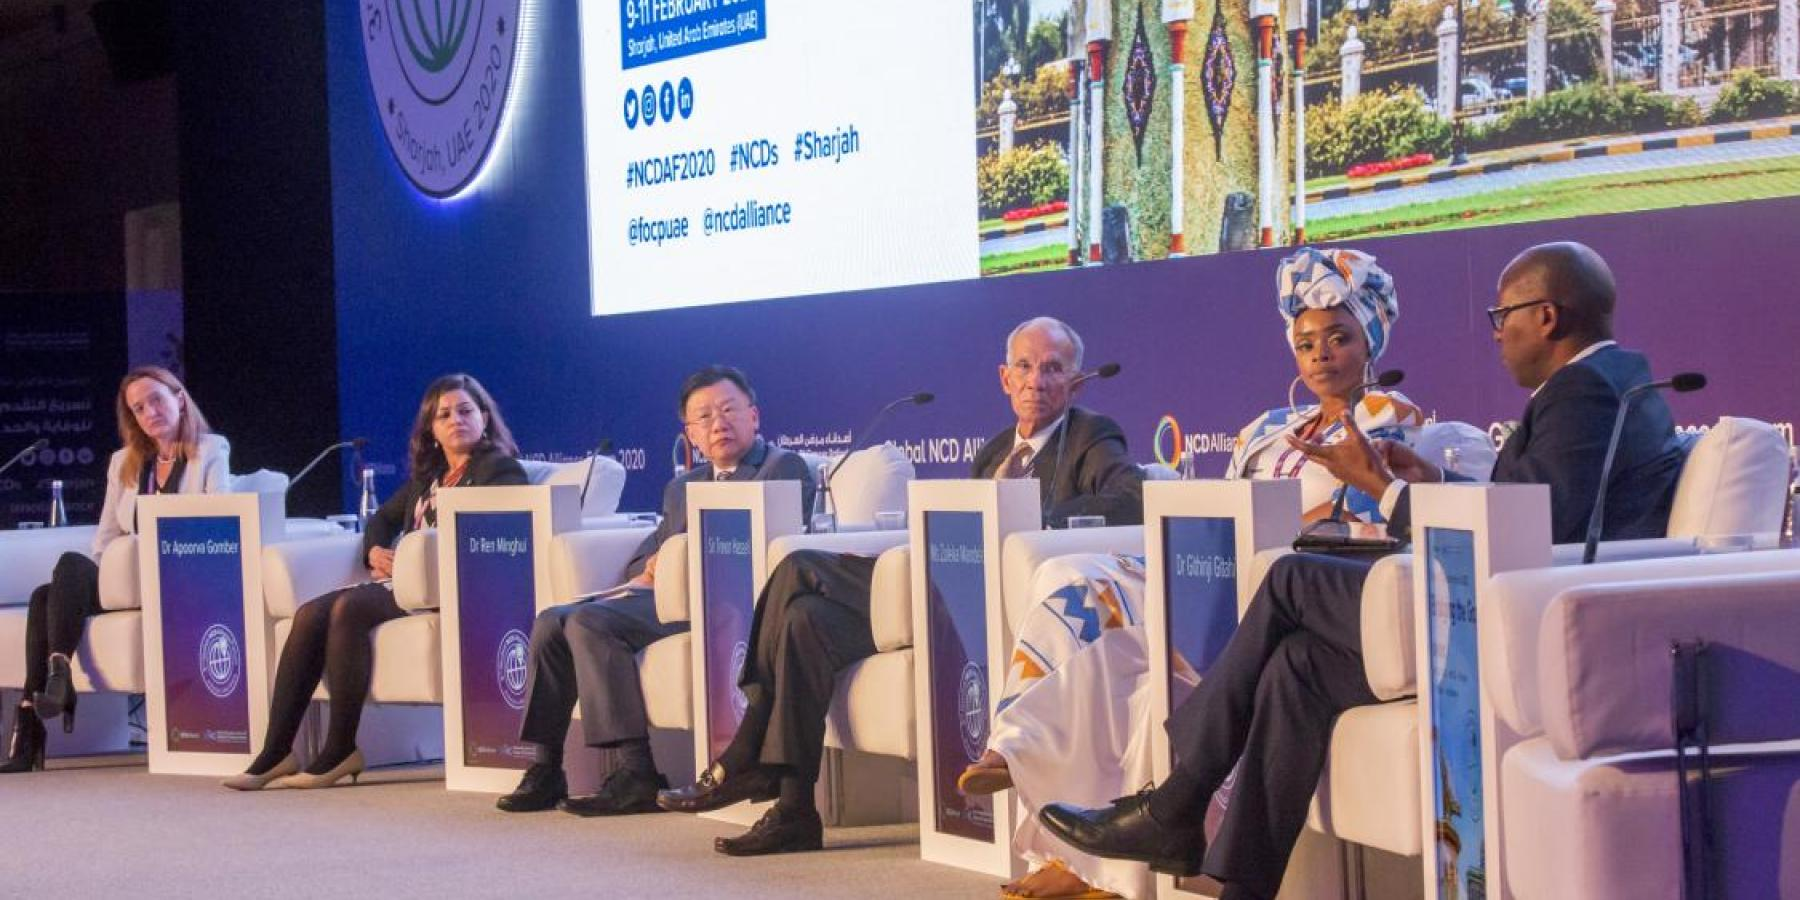 NCDAF2020 - Opening Ceremony - 9 Feb - Panel